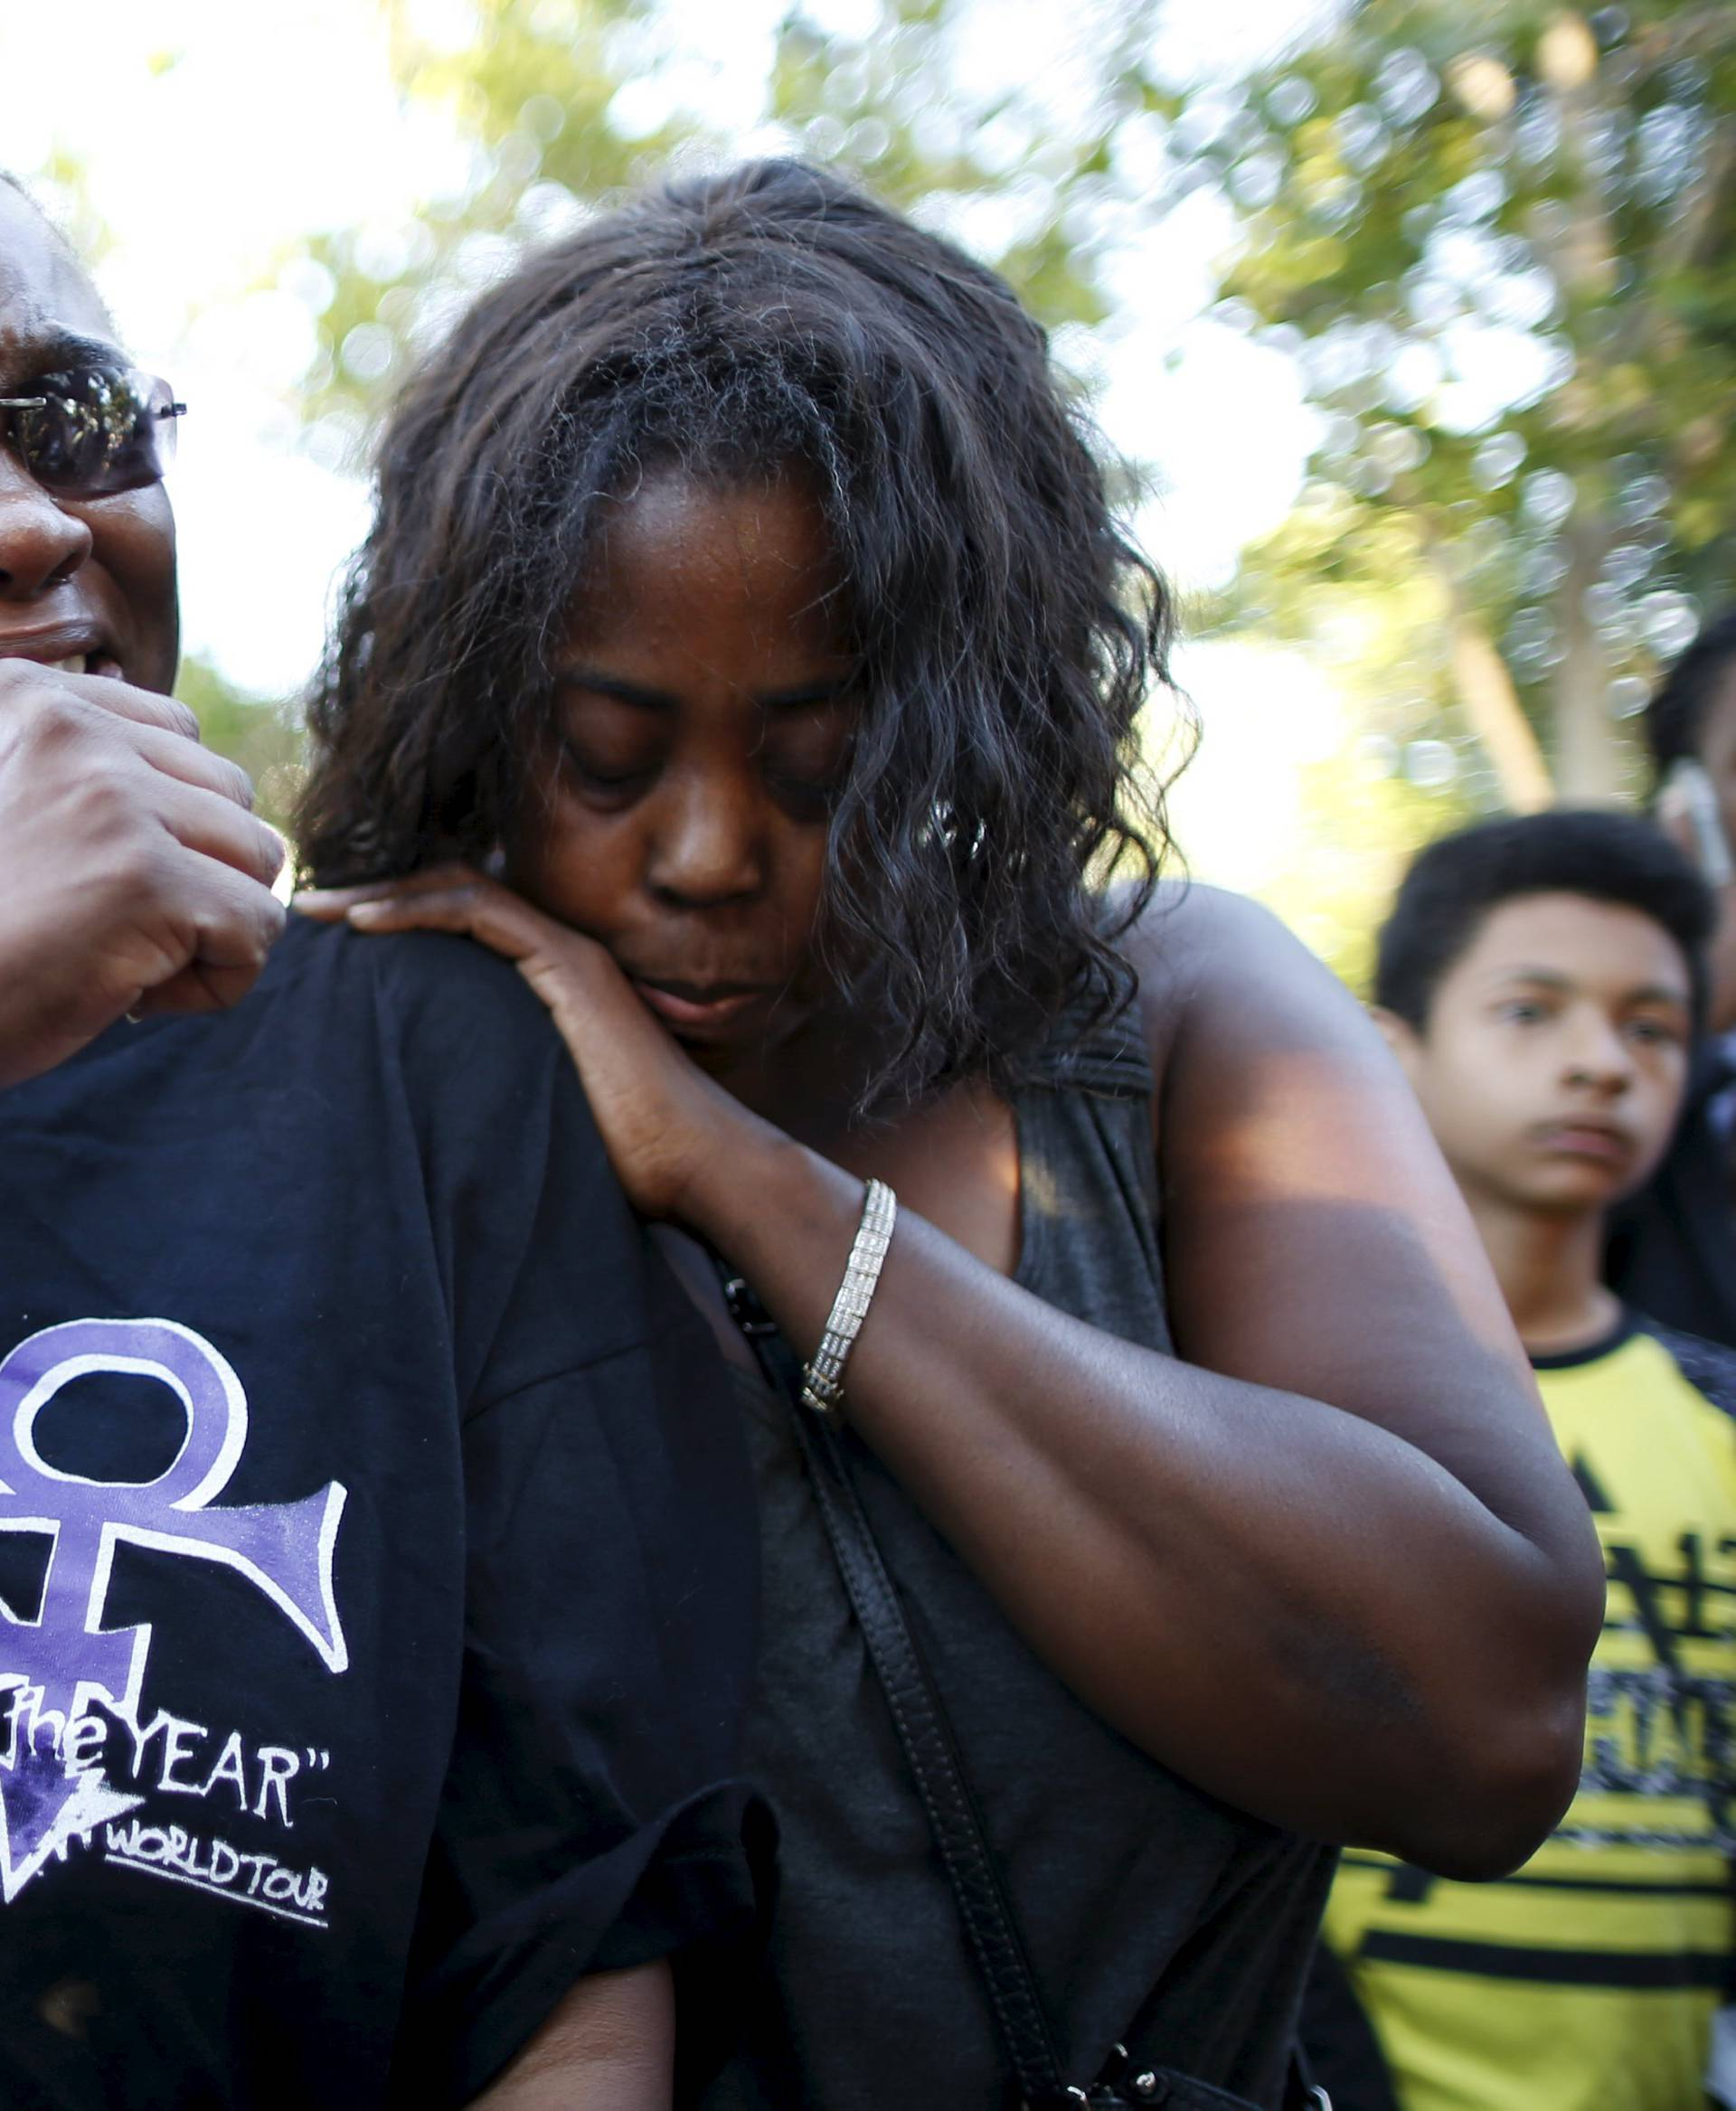 Loretta Thomas, 45, and Deshone, 50, listen to a Prince song at a vigil to celebrate the life and music of deceased musician Prince in Los Angeles